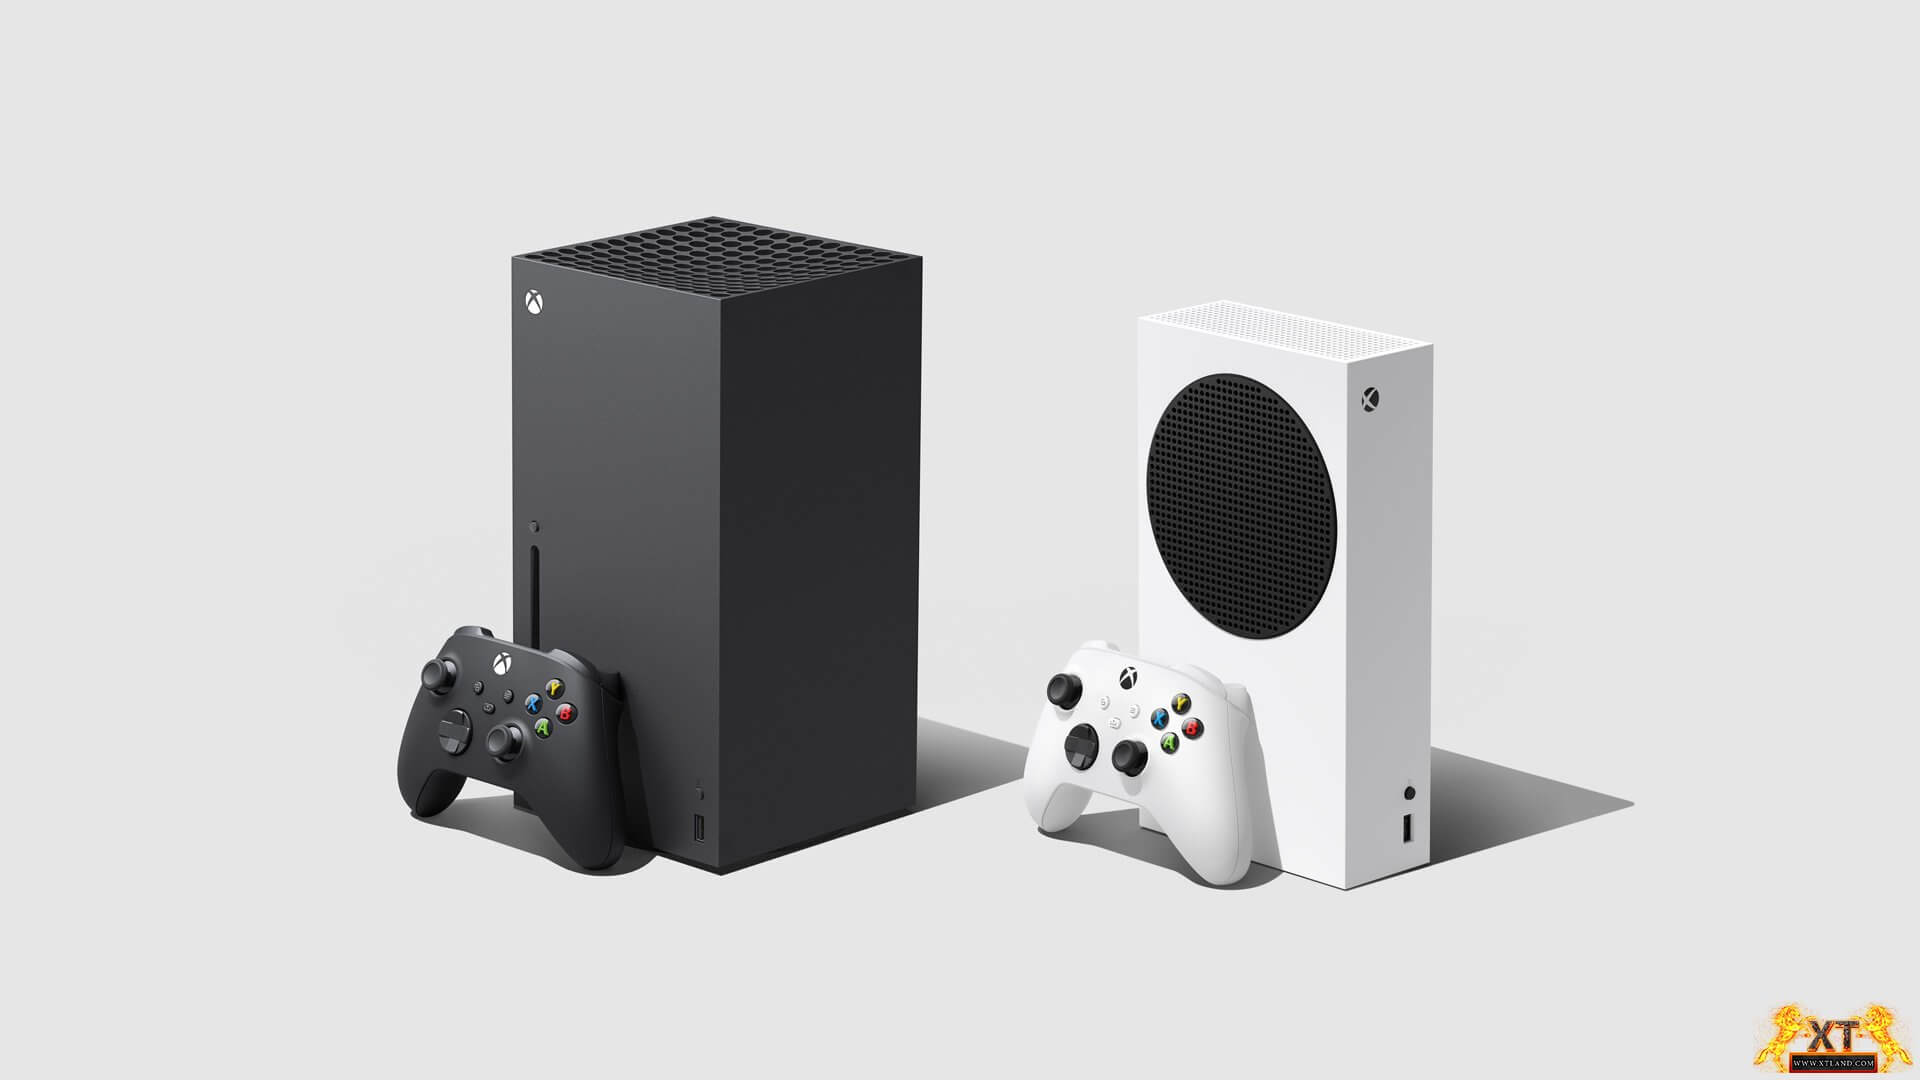 Xbox Series X Launches on November 10th for $499|Series X/S Pre-Orders Kick off on September 22nd